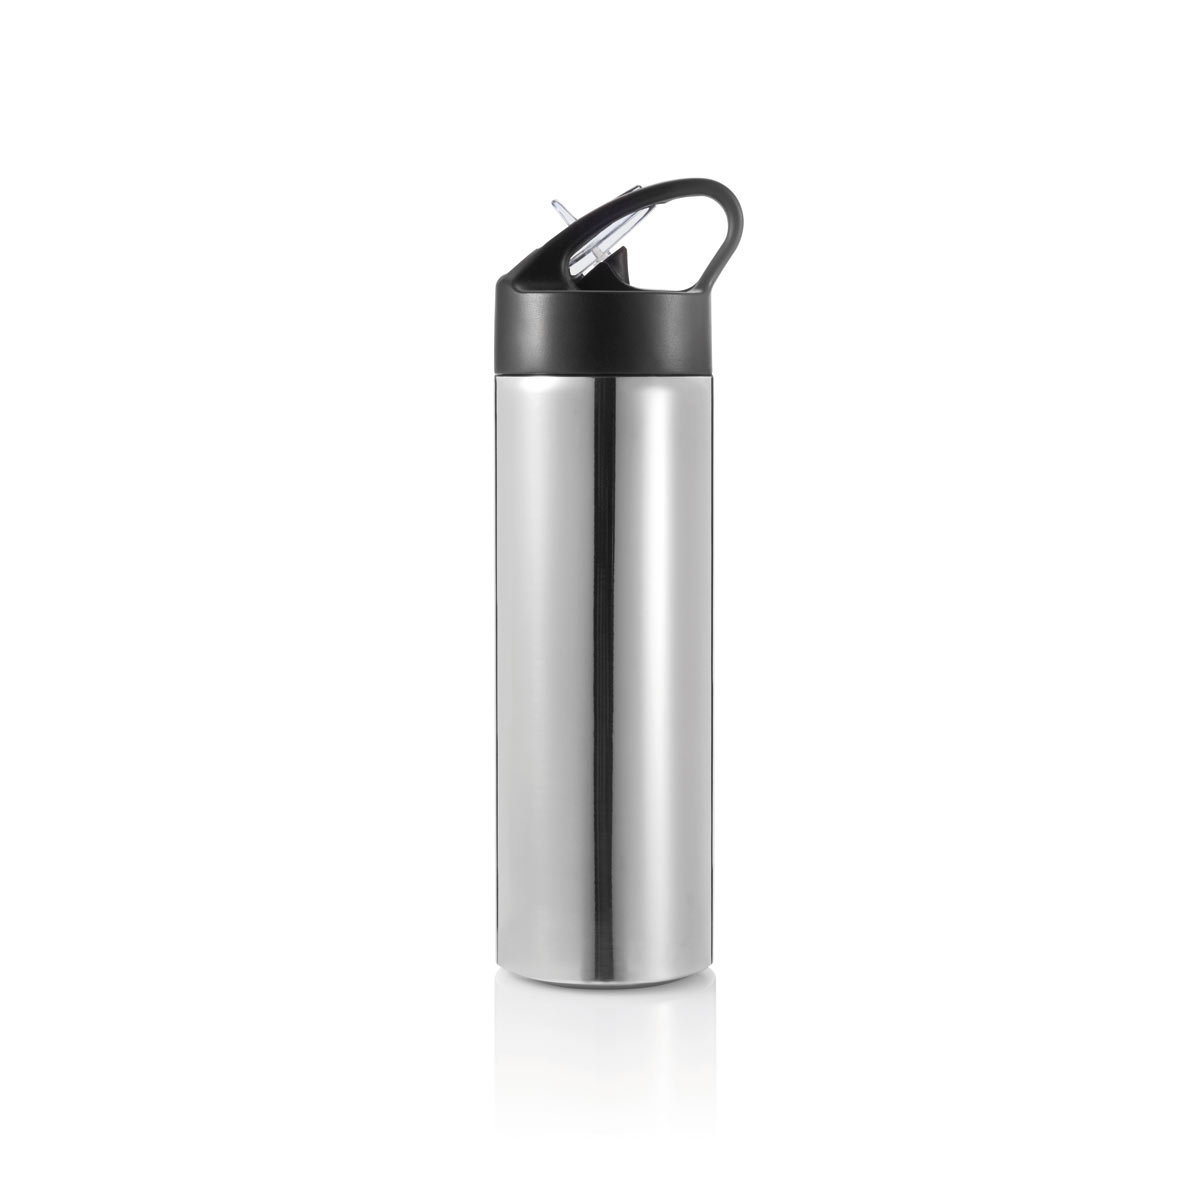 bouteille thermos publicitaire bouteille publicitaire bouteille publicitaire mug inox. Black Bedroom Furniture Sets. Home Design Ideas